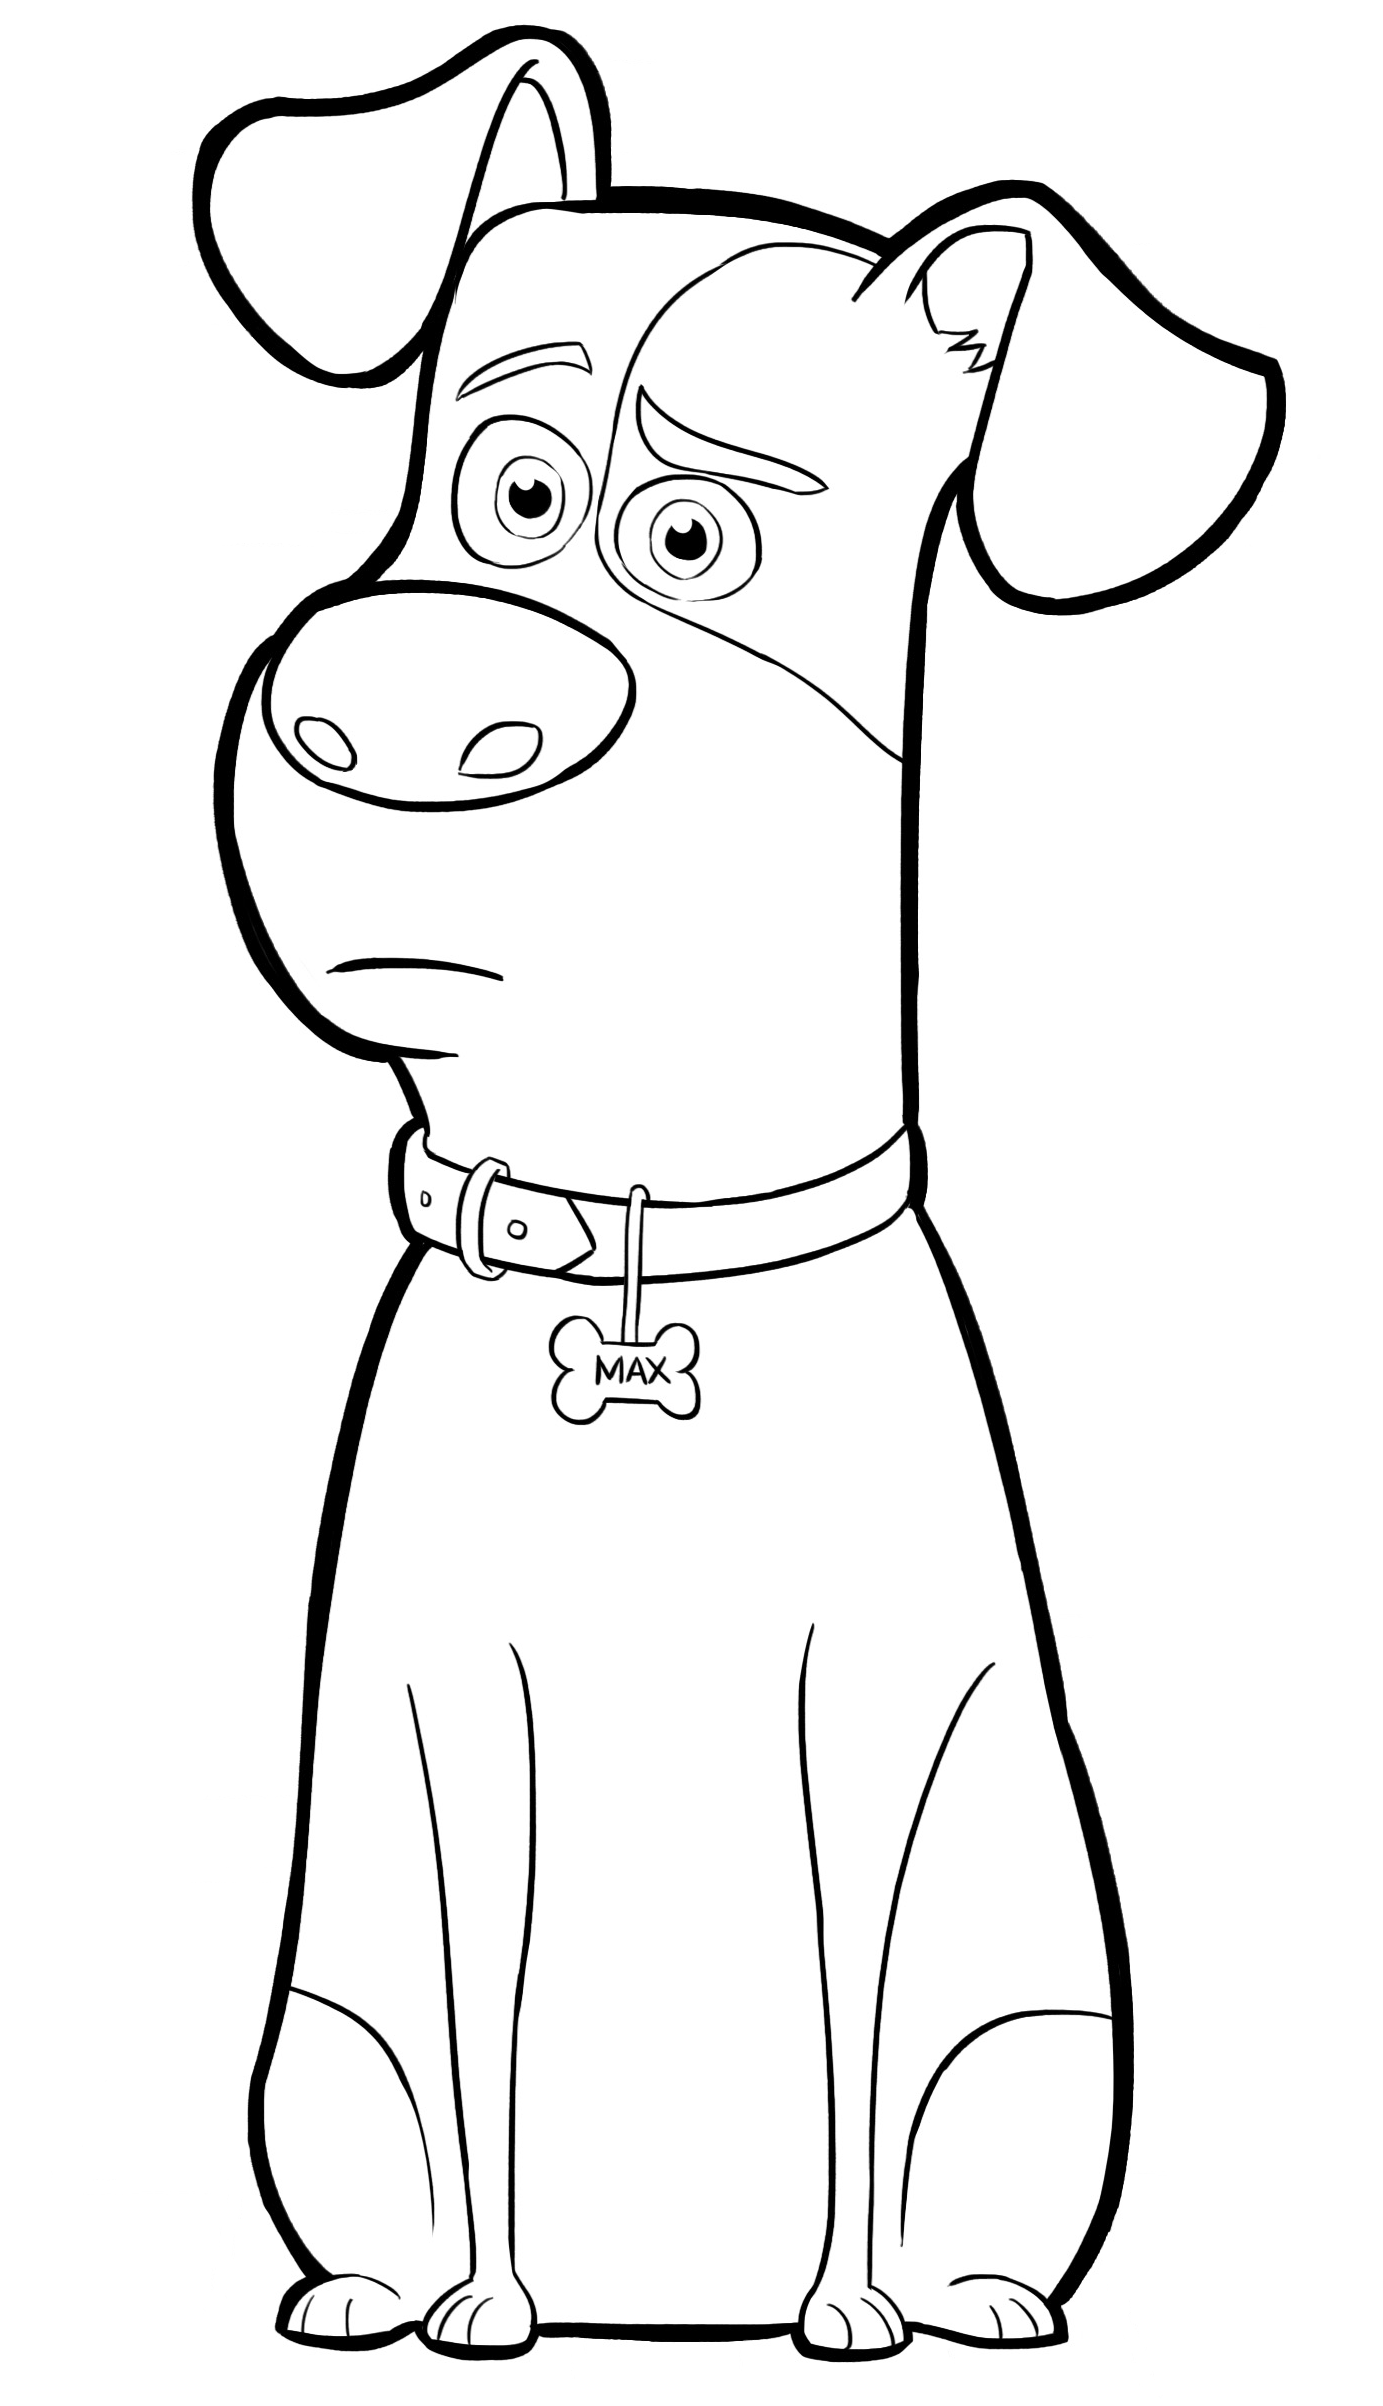 coloring pages pets printable - photo#16